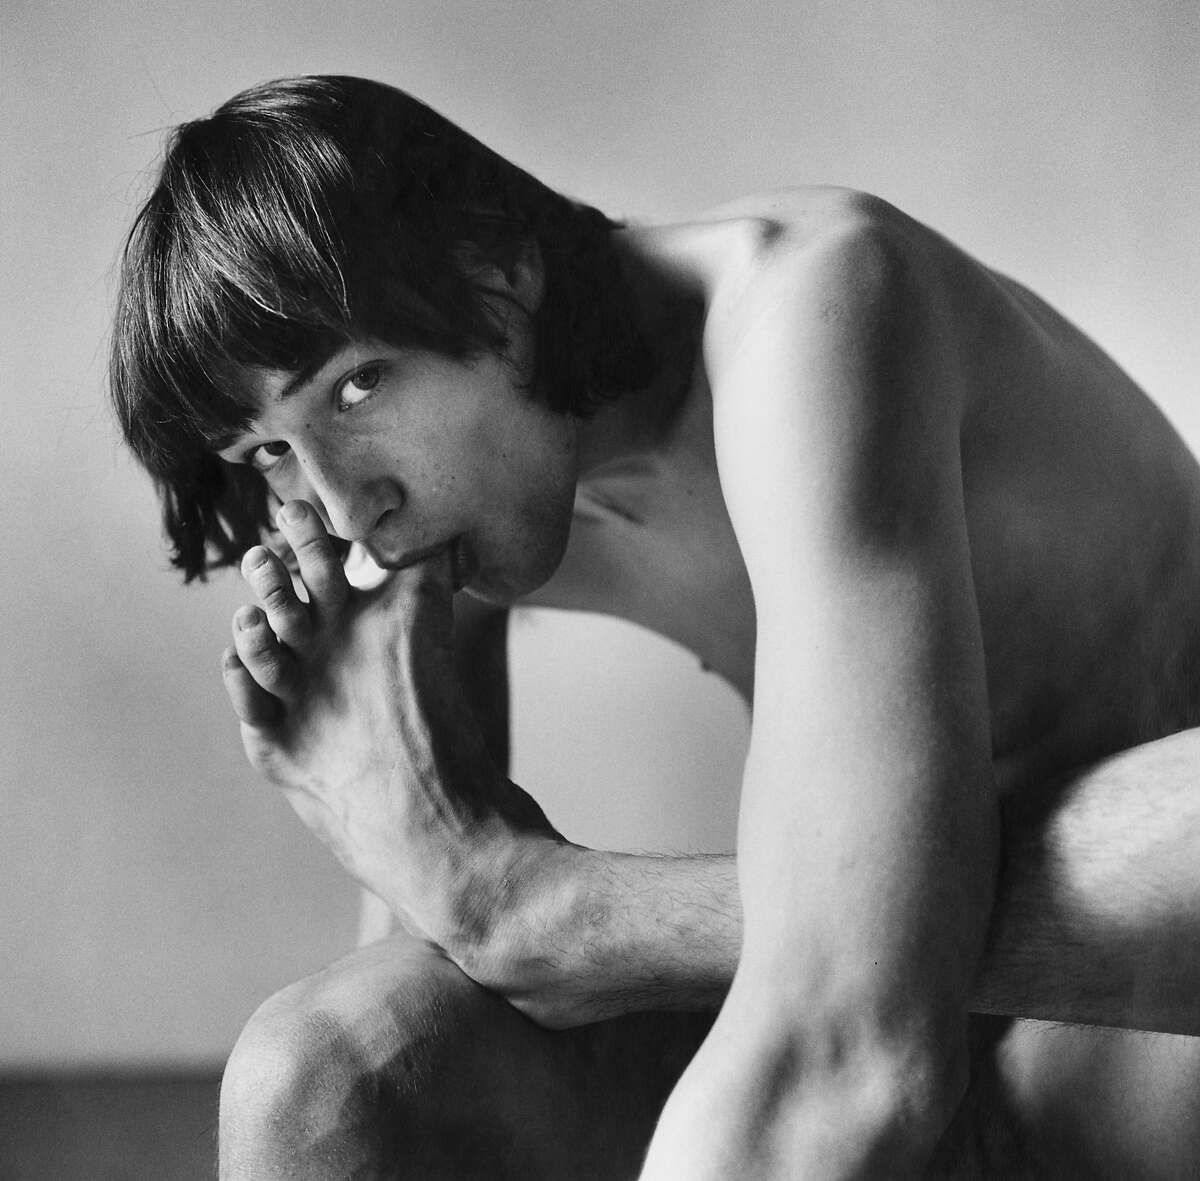 Peter Hujar, Daniel Schook Sucking Toe, 1981